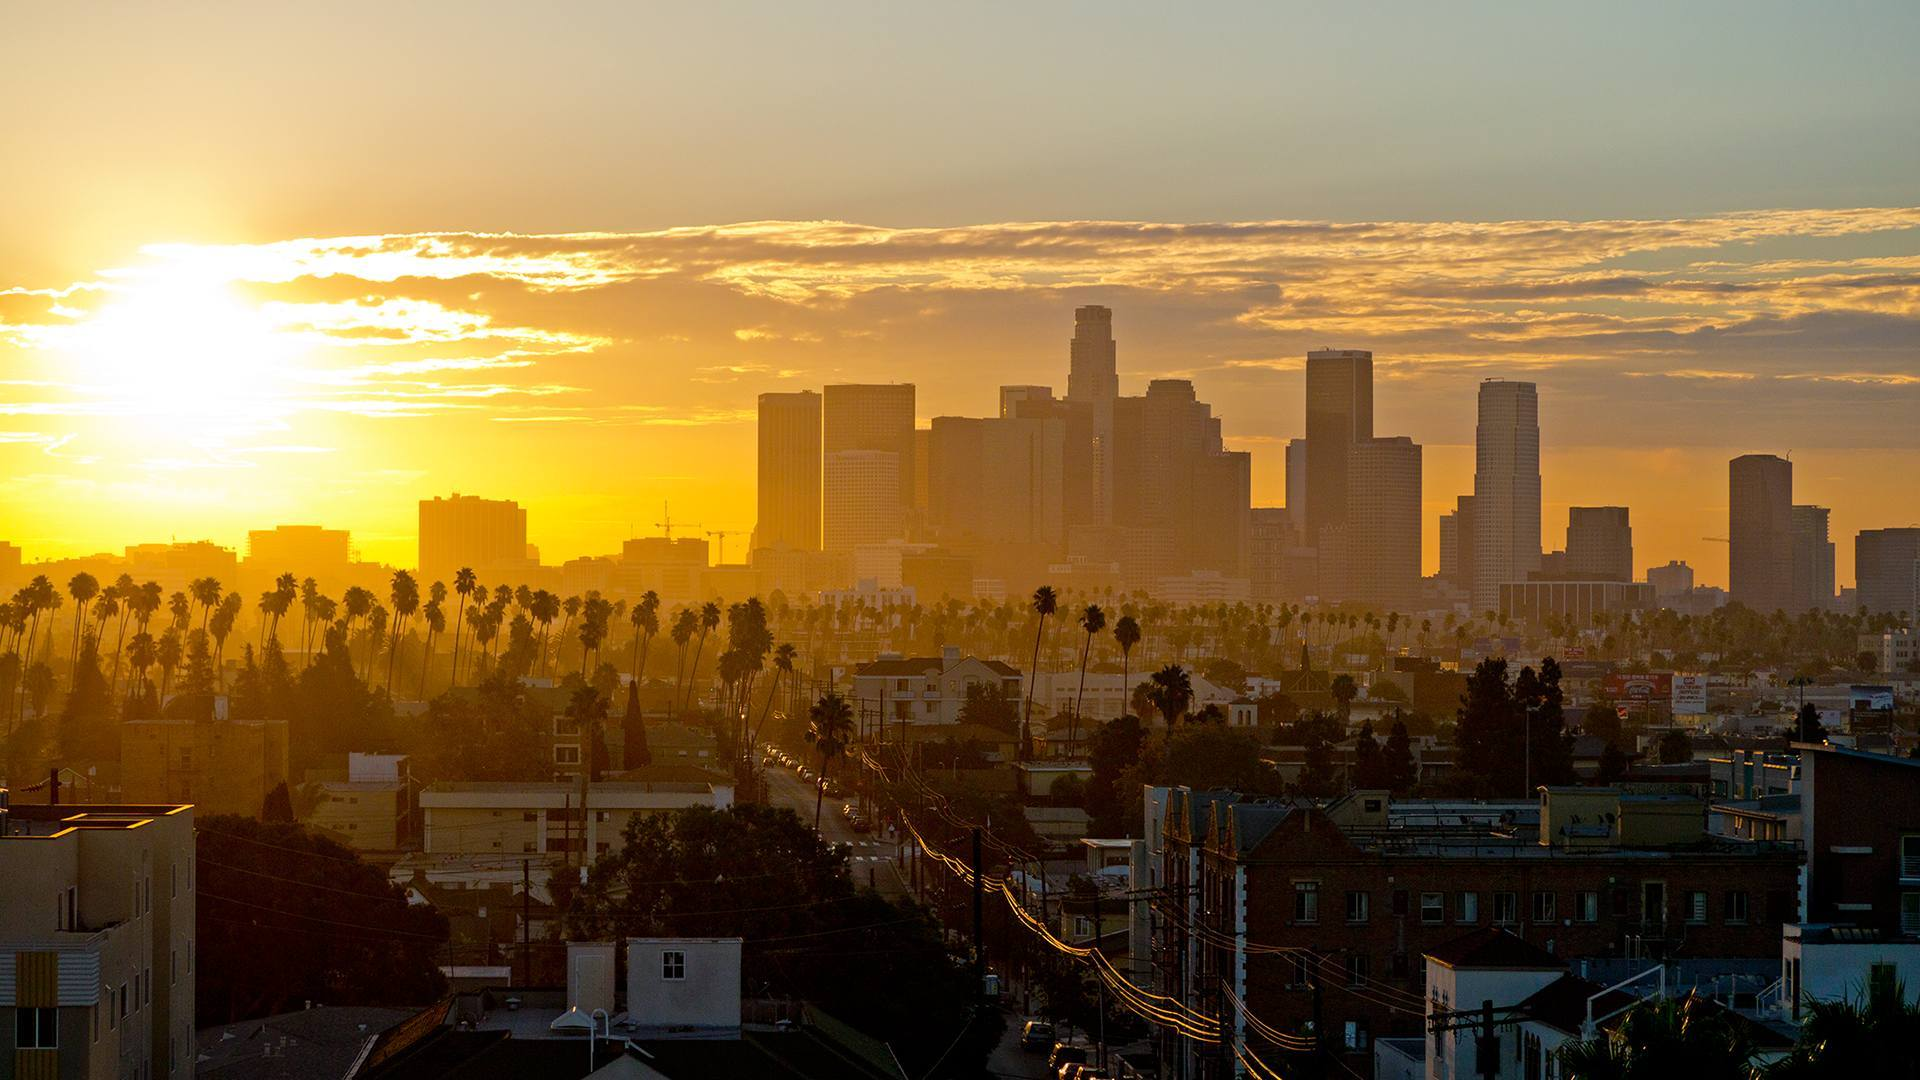 Best of Los Angeles HQ Photos | World'-s Greatest Art Site